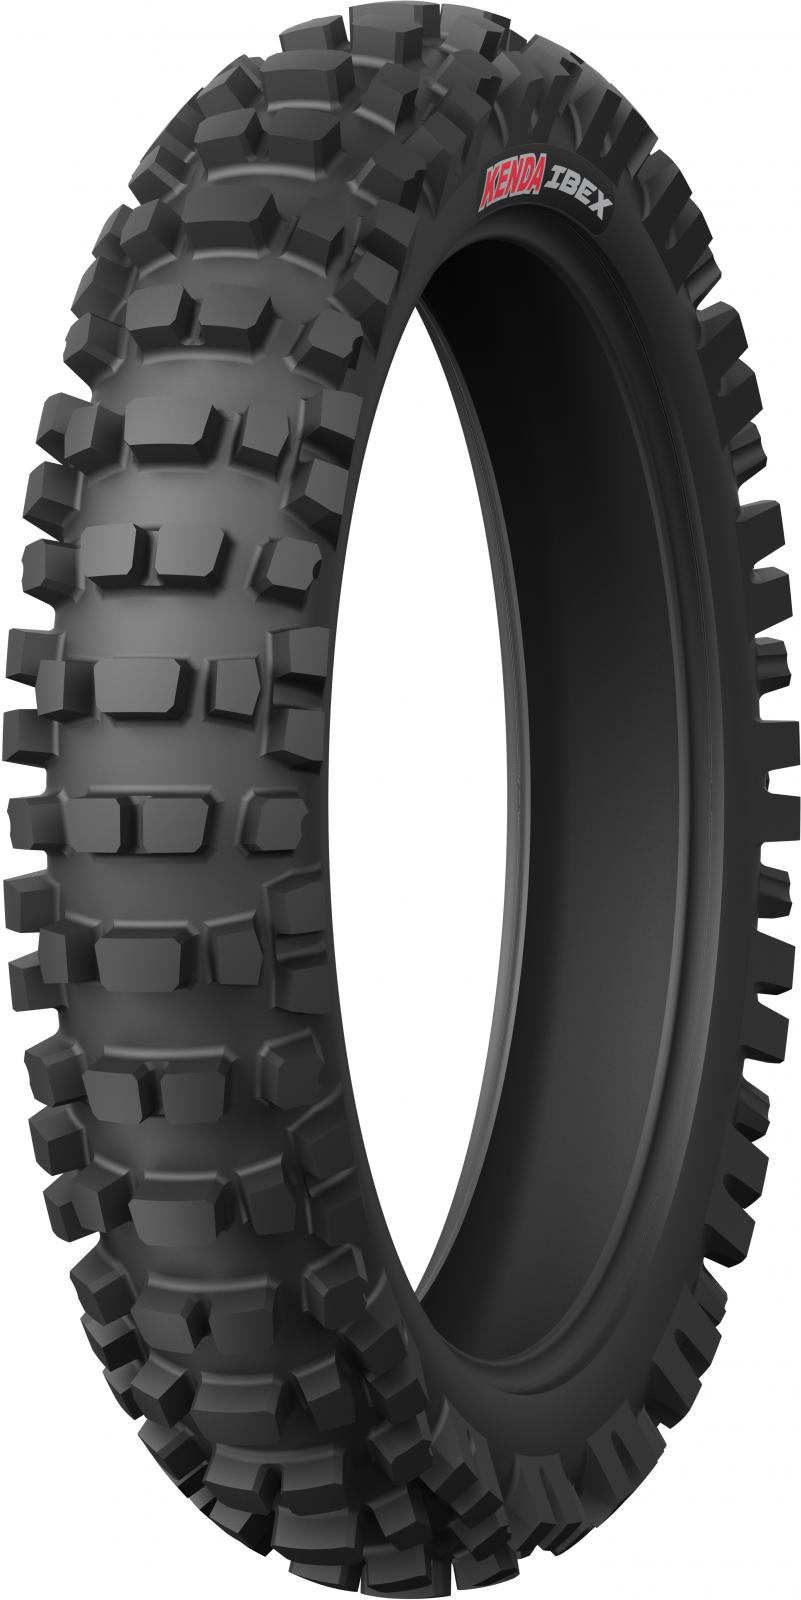 The ALL NEW Kenda IBEX Tire, tested in extreme Enduro ...